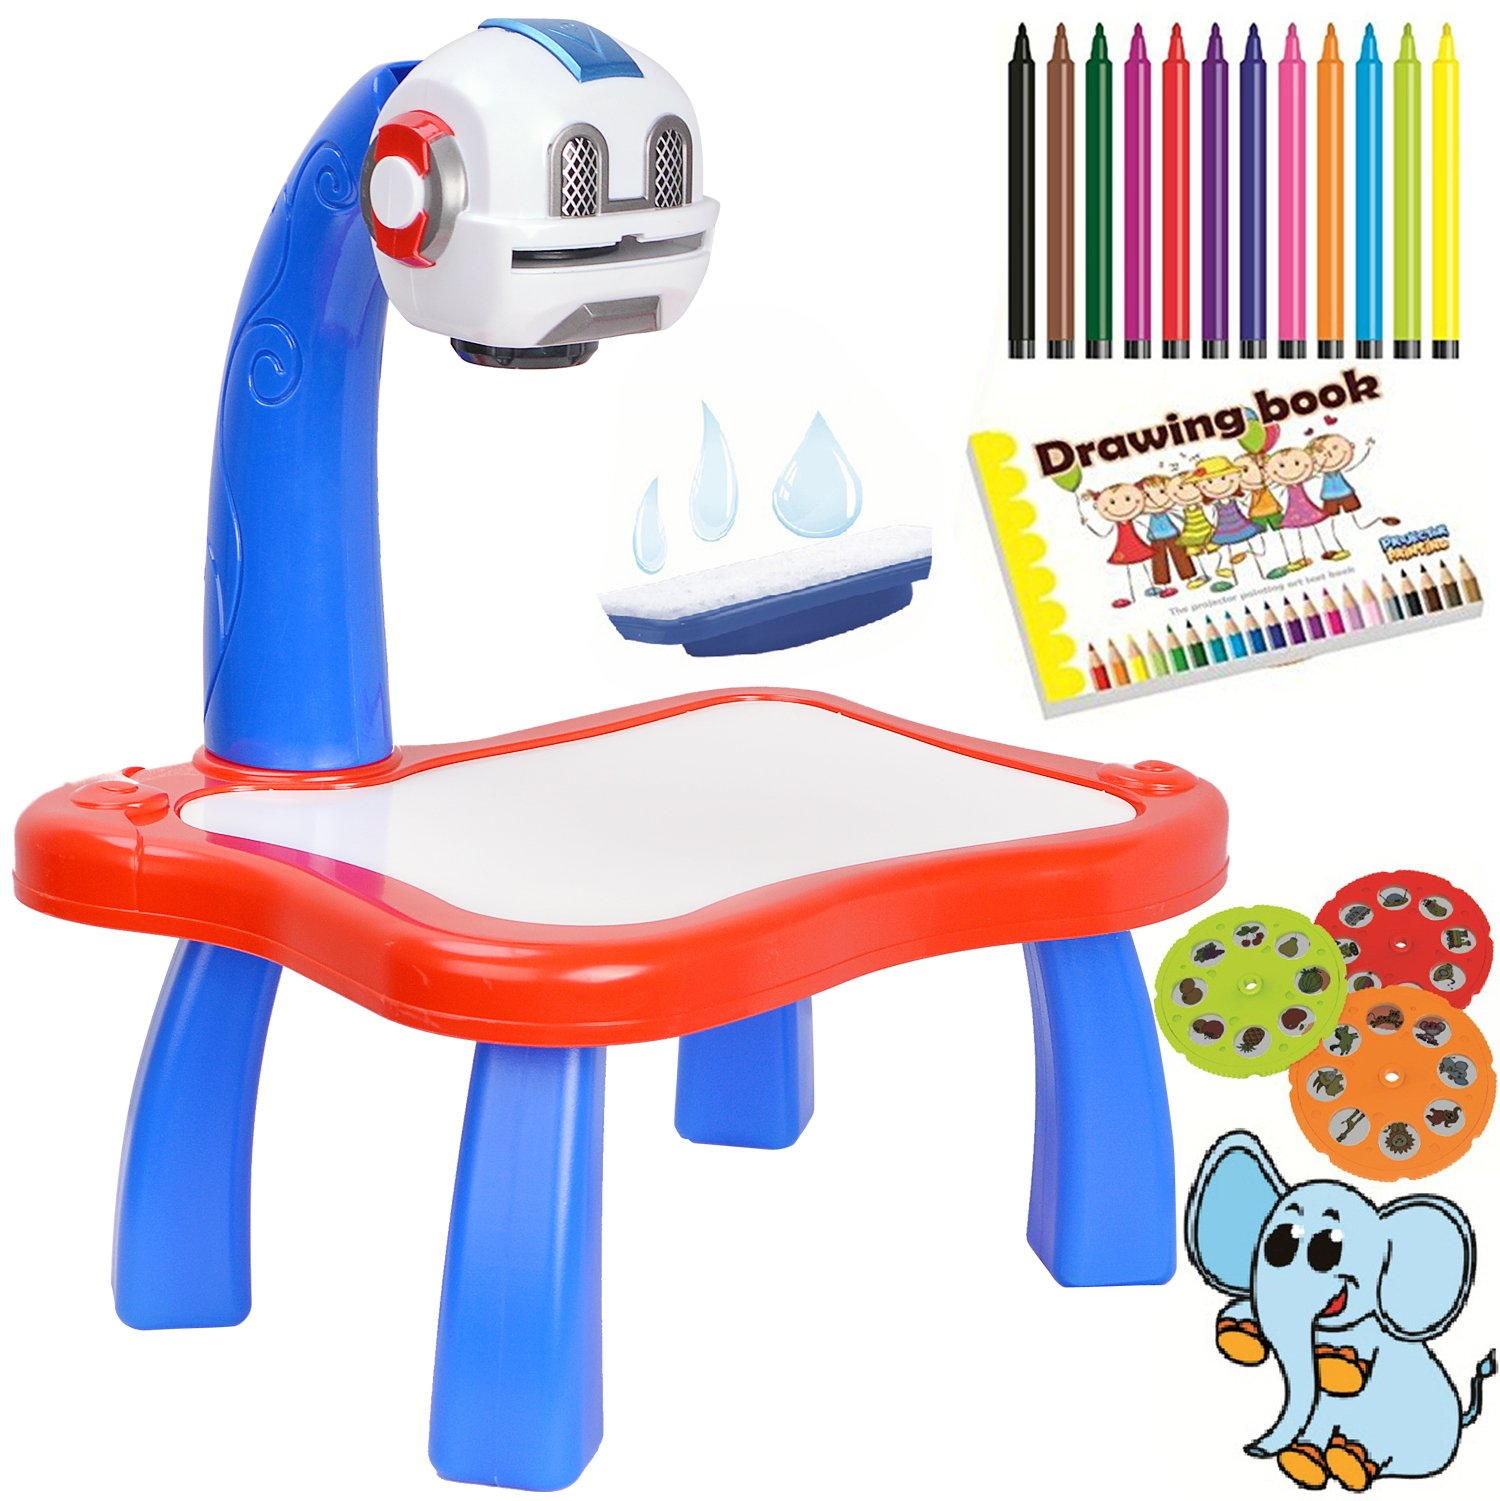 7TECH Drawing Projector Painting Desk With 24 Patterns-12 Colorful Water Pens Treasures Tracer Art Projector For Kids - Robot Style